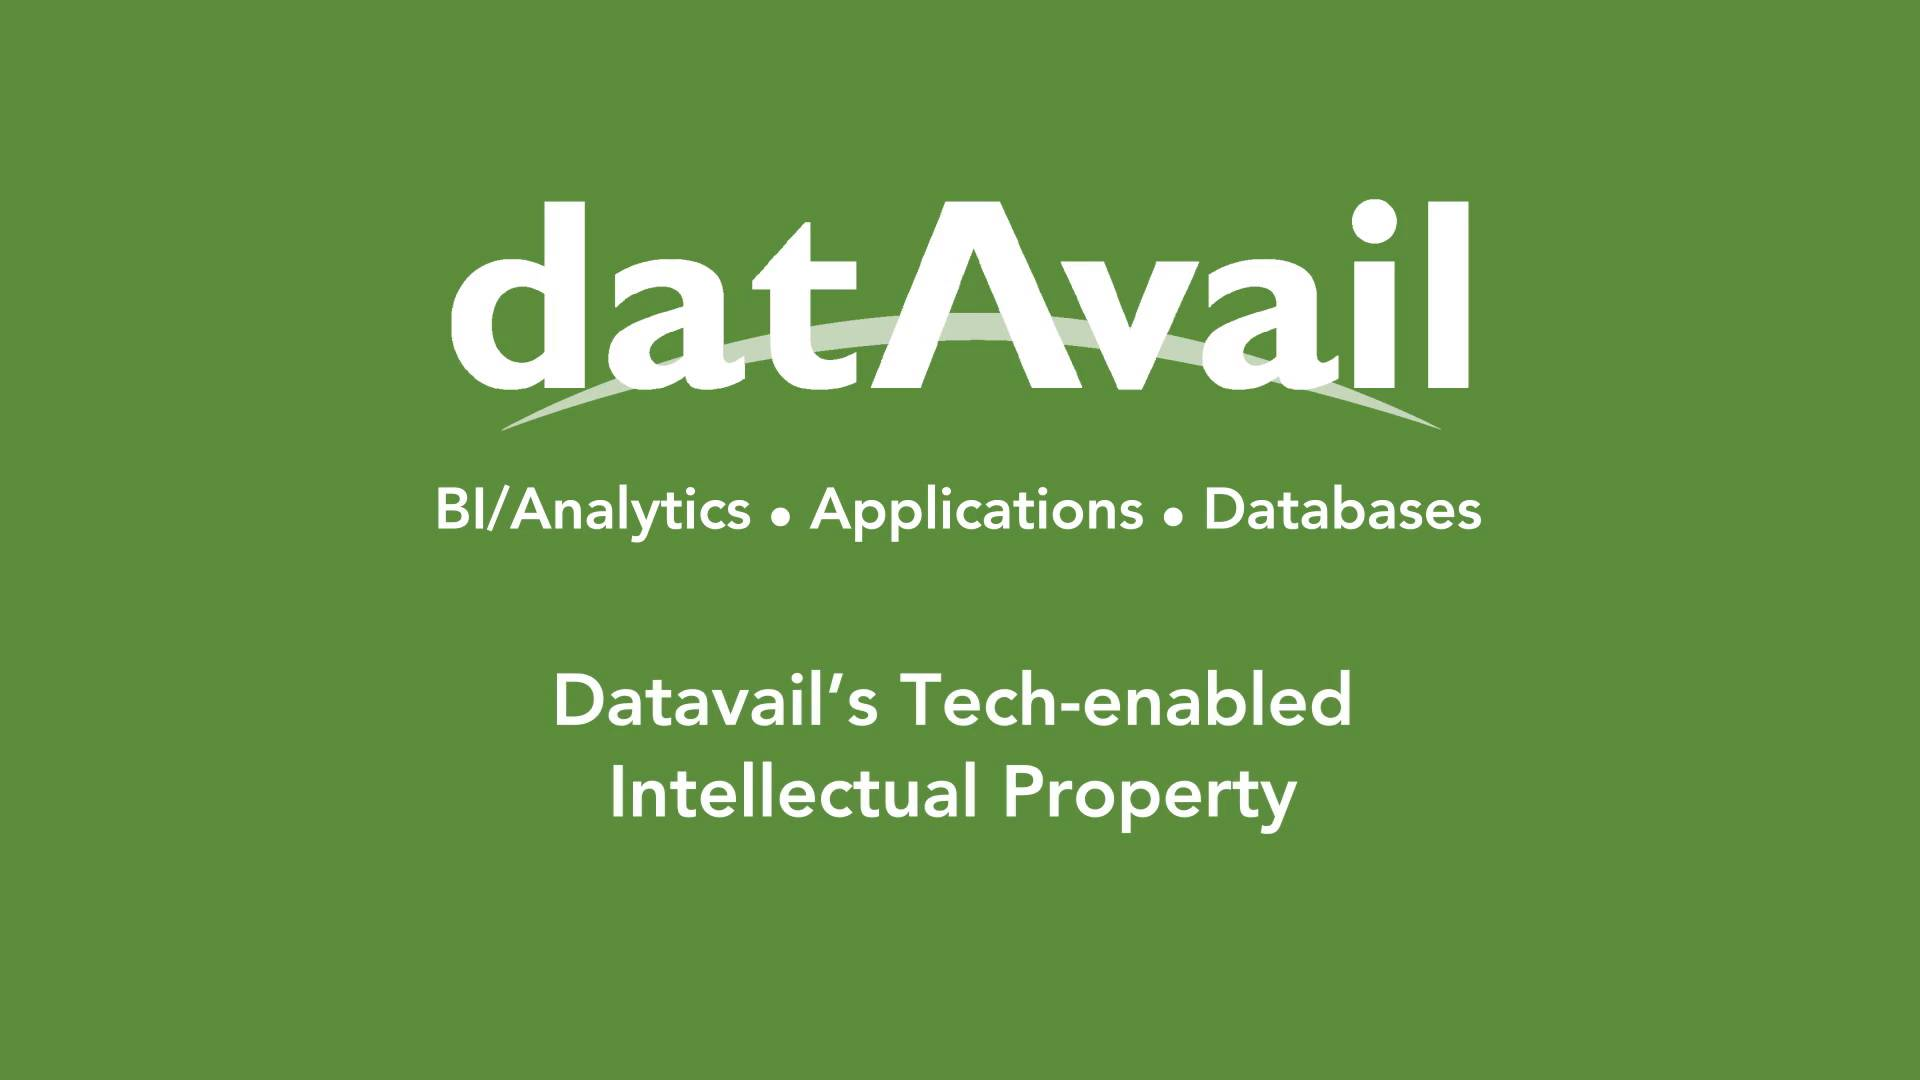 Datavail's Tech-enabled Intellectual Property | Datavail